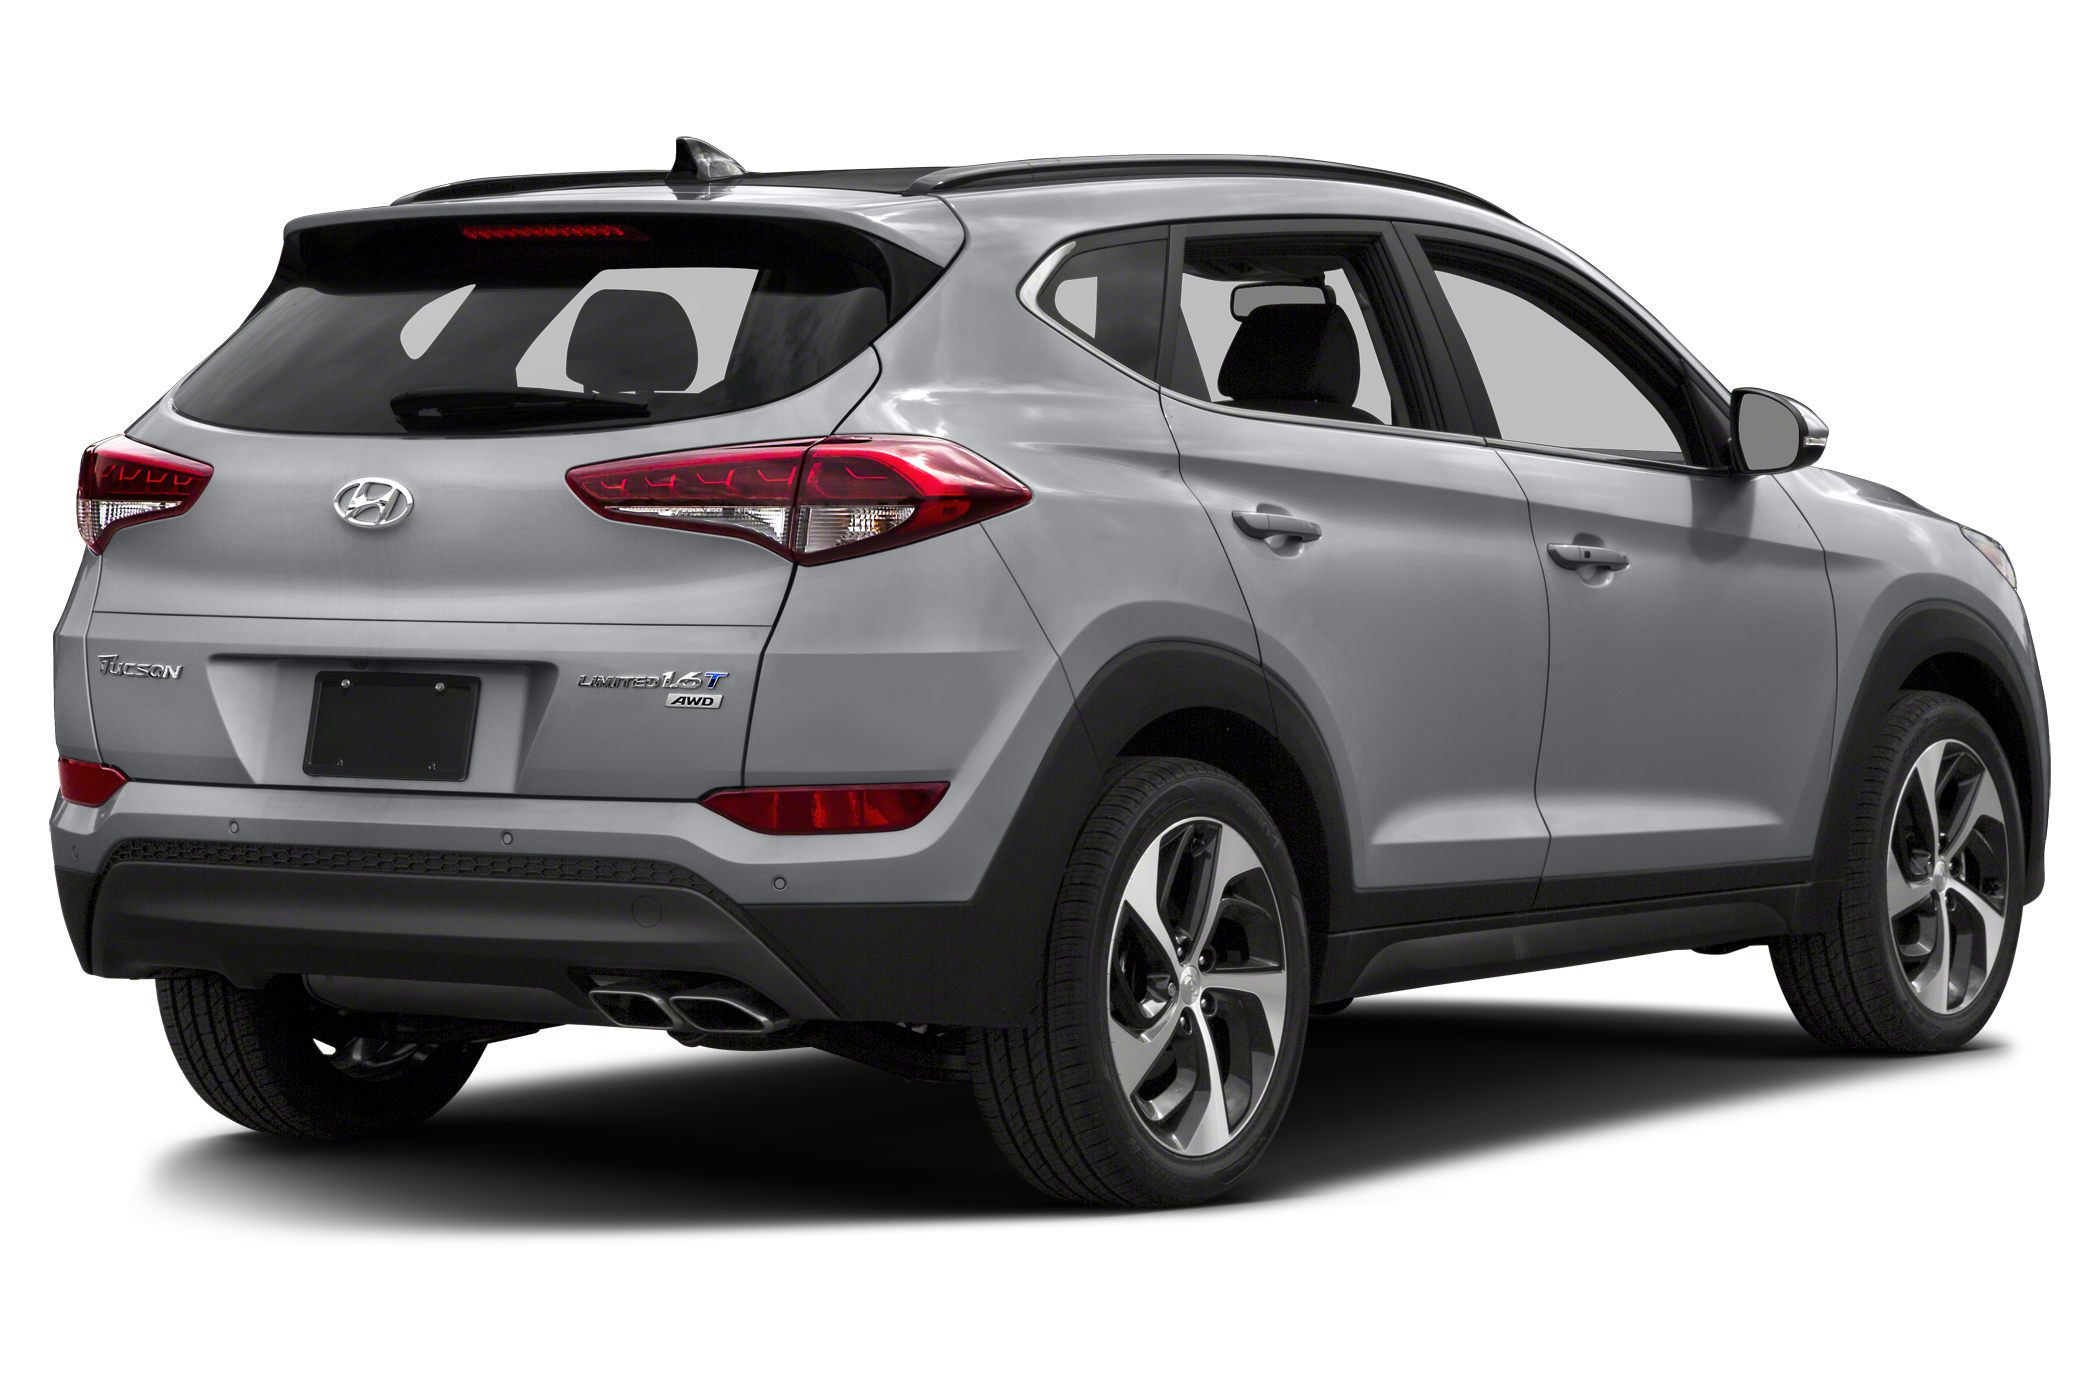 Car Repair Estimate >> 2017 Hyundai Tucson Reviews, Specs and Prices | Cars.com